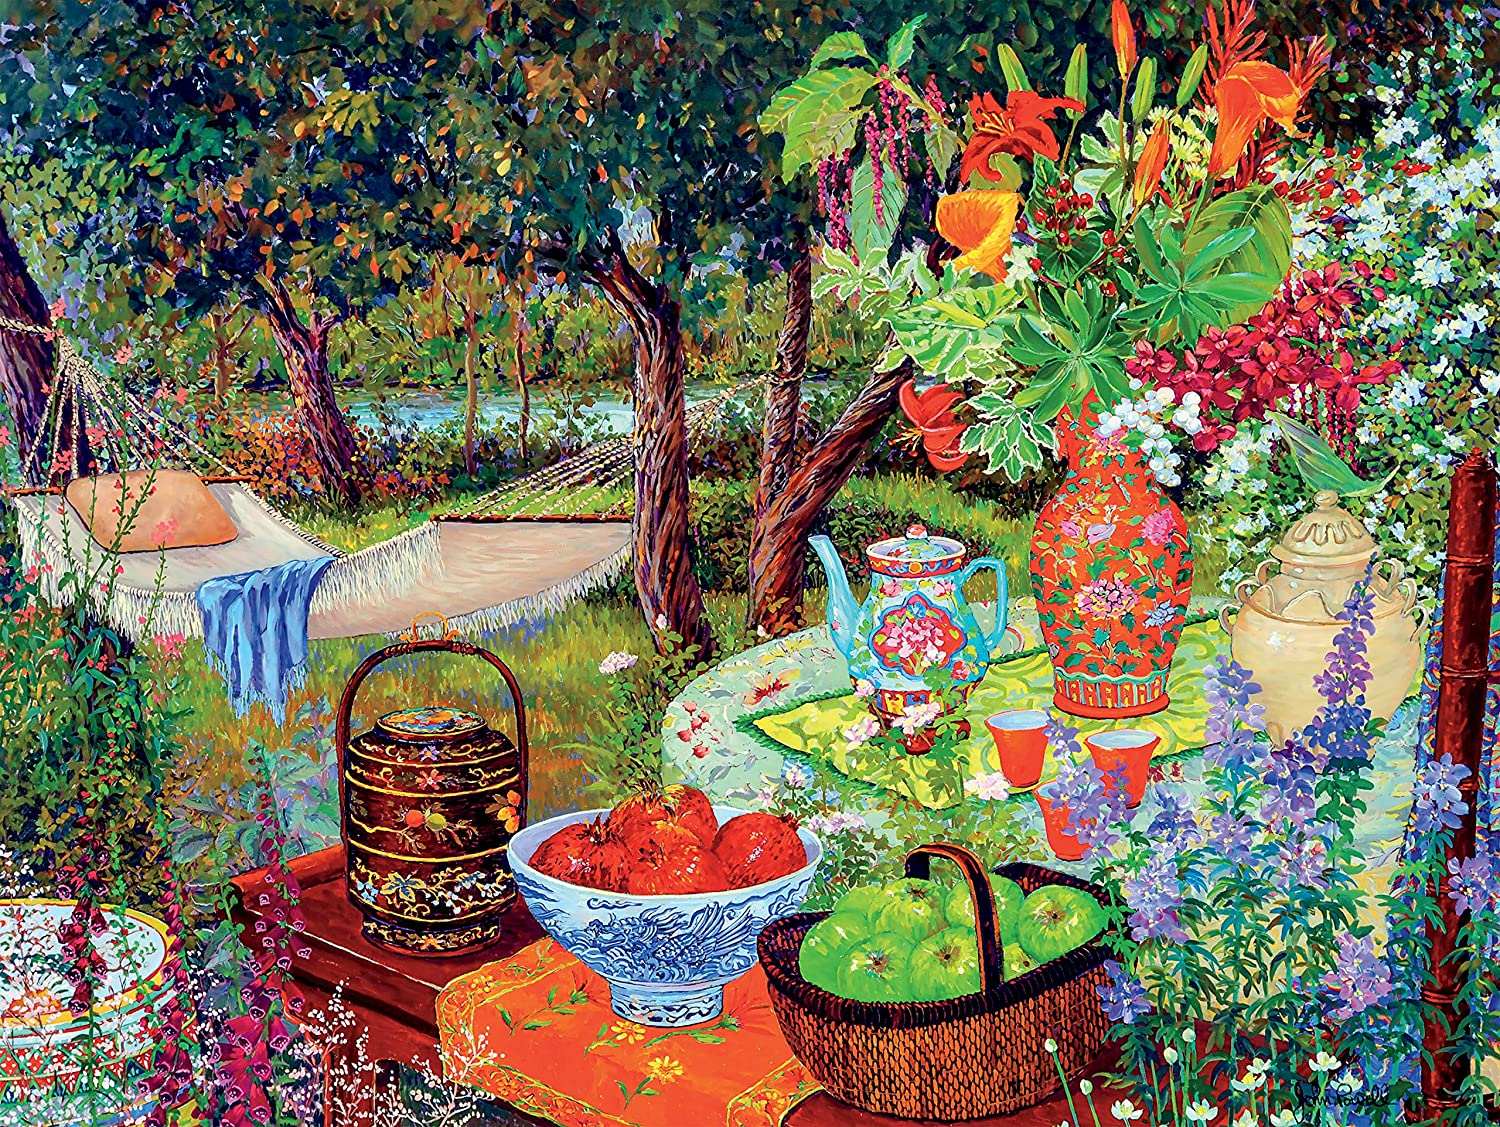 John Powell - Turquoise Tea and Harvest Apples Jigsaw Puzzle, 300 Pieces